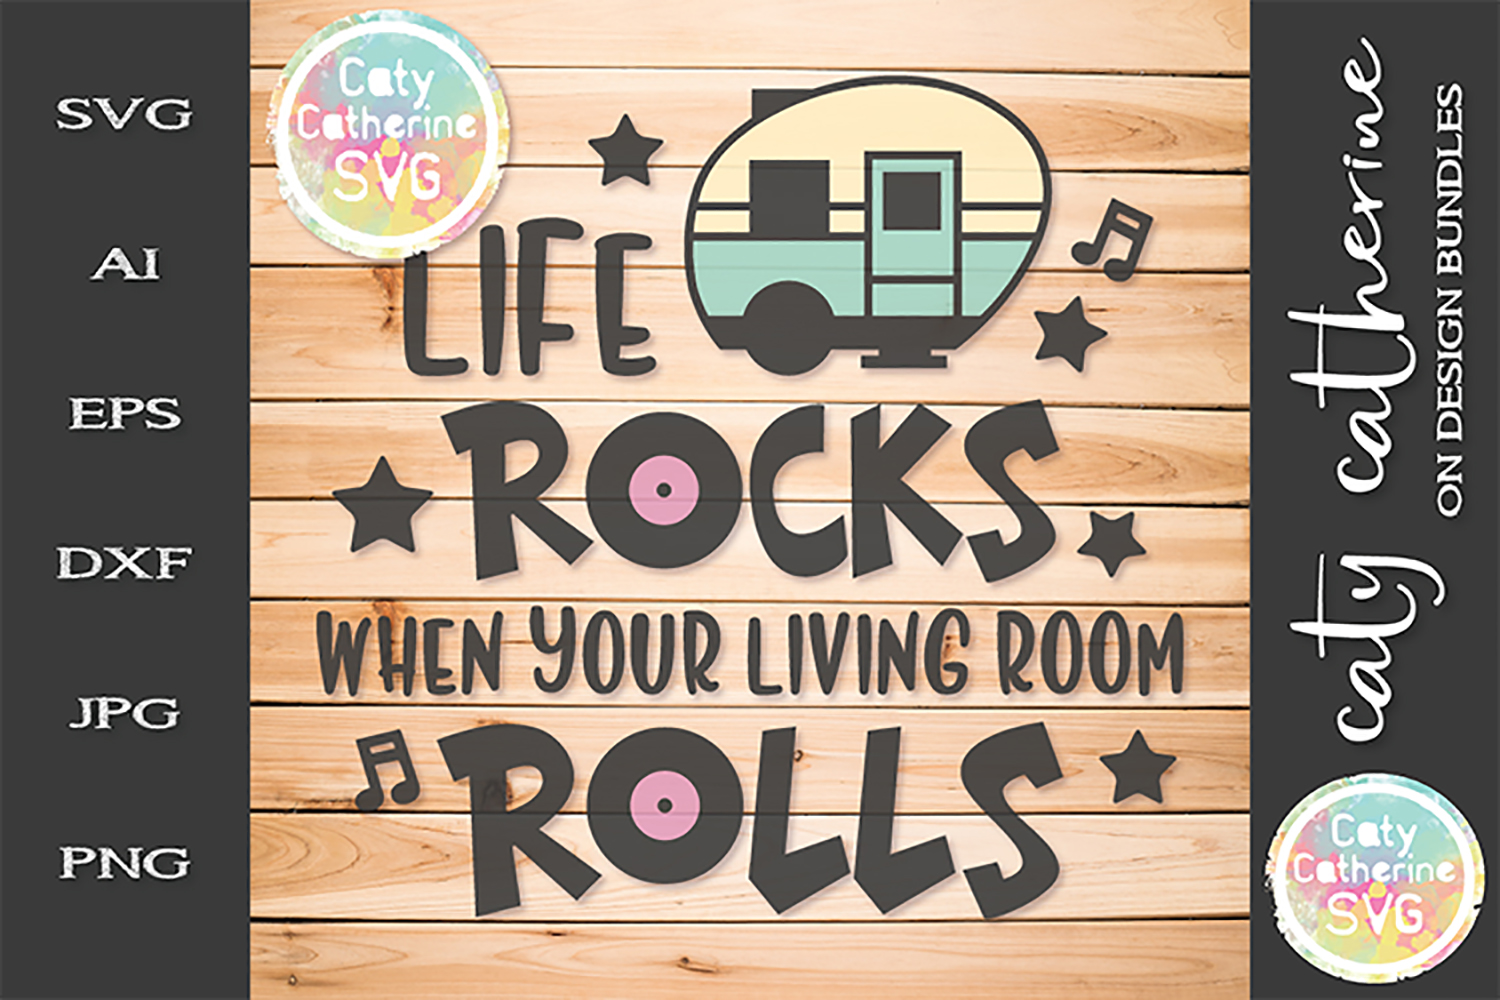 Caravan Life Rocks When Your Living Room Rolls Camping SVG example image 1